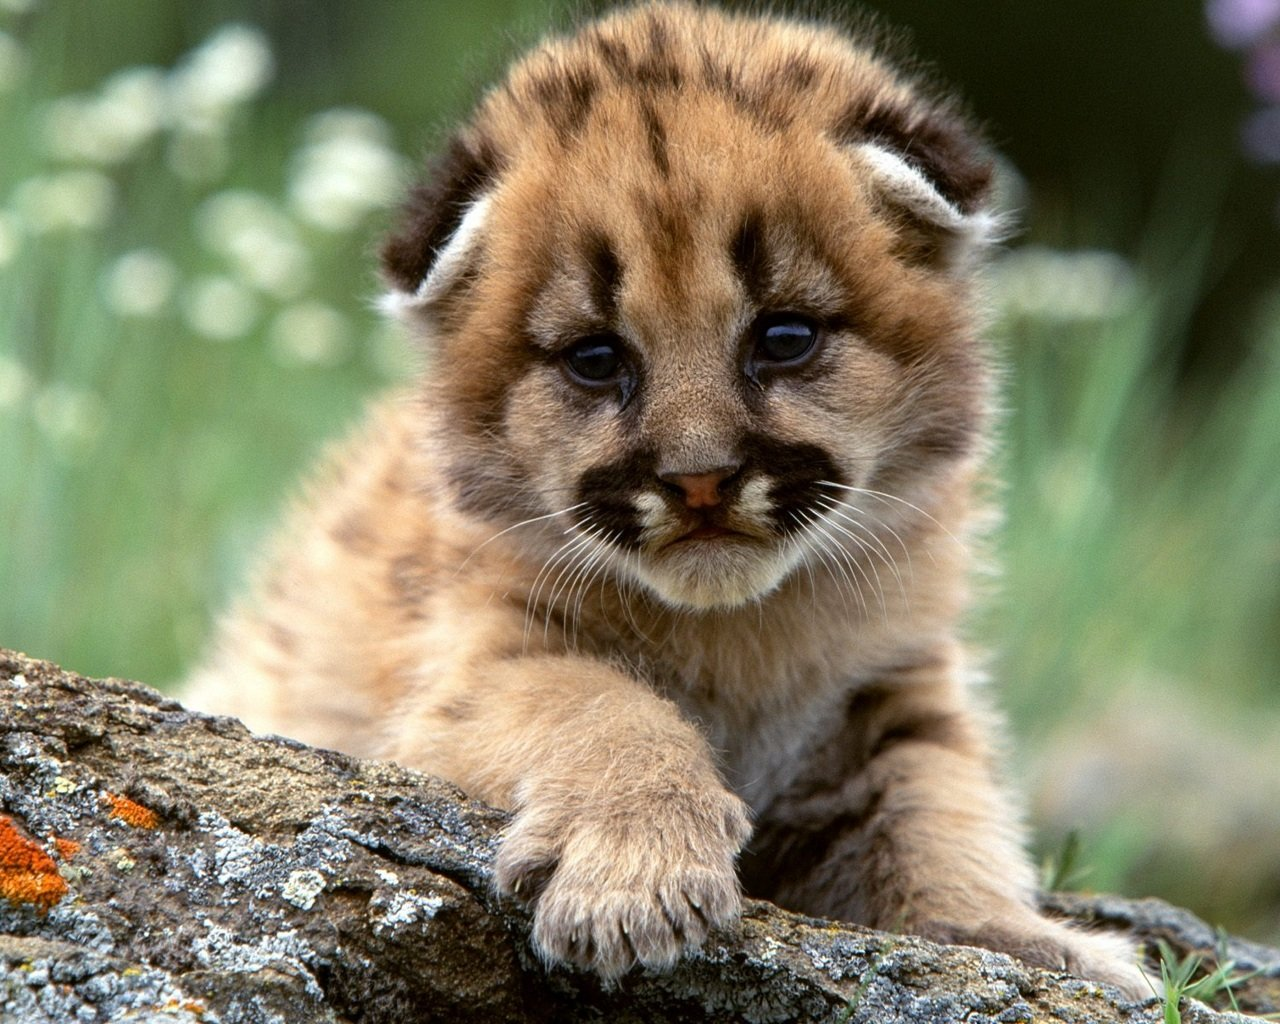 Best Baby Animal (cub) wallpaper ID:422657 for High Resolution hd 1280x1024 computer